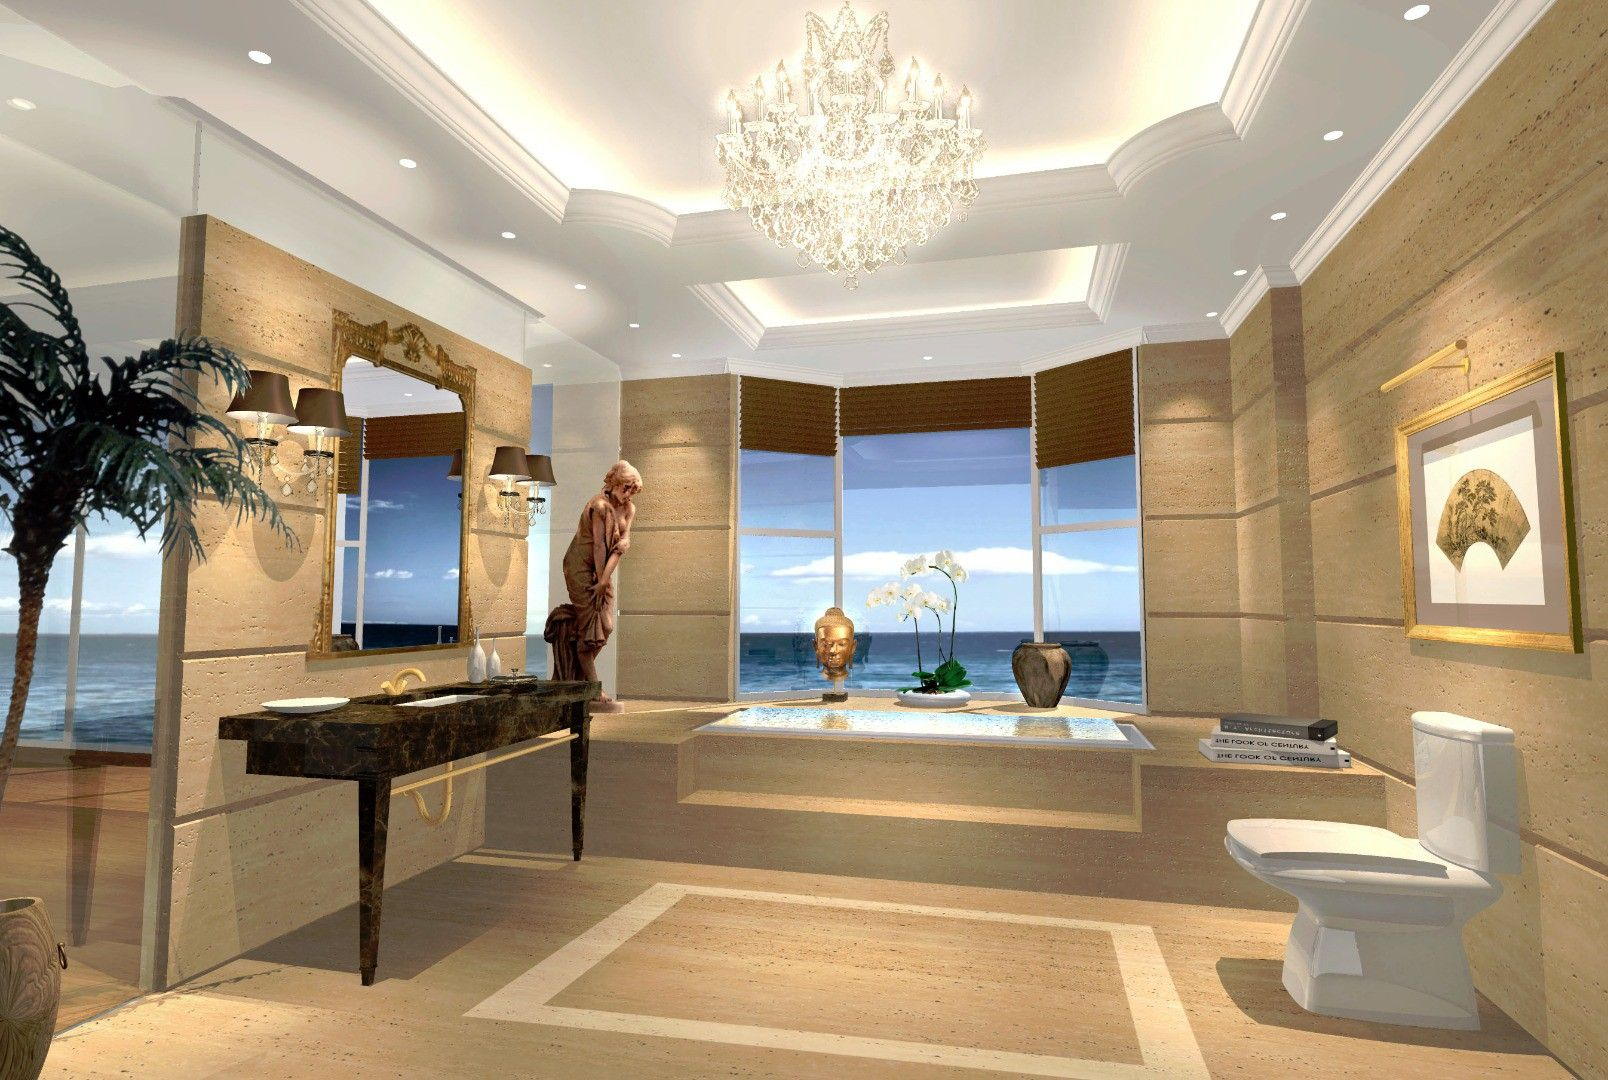 Spa Decor Ideas Residential Interior Design Hong Kong Designer Find The Best Freelance Designers Expertise In Small E At